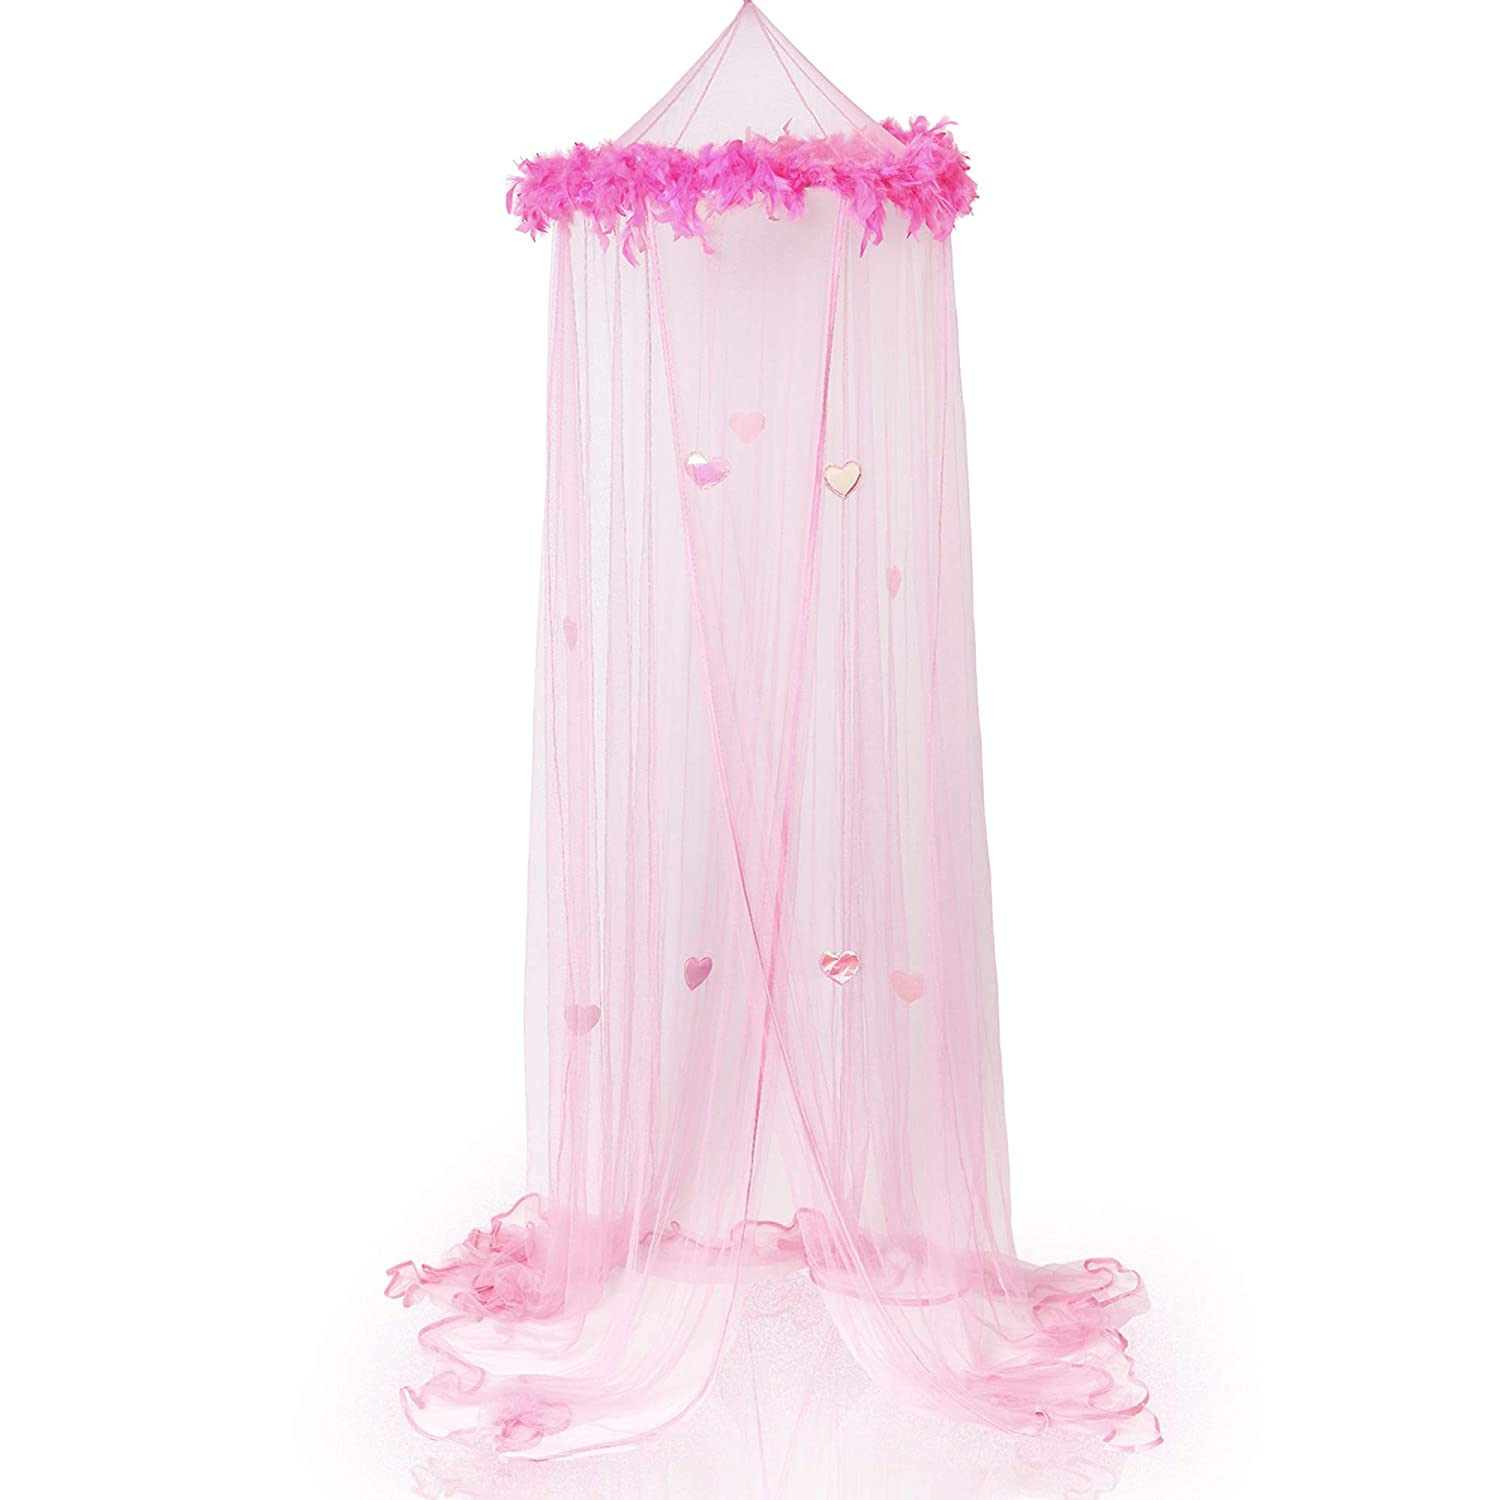 Bobo and Bee - Luxury Princess Bed Canopy Mosquito Net for Girls, Teens or Over Baby Crib in Nursery.Comes with Hanging Kit. Premium Feather Boa and Sparkly Hearts, Twin Size. Pink